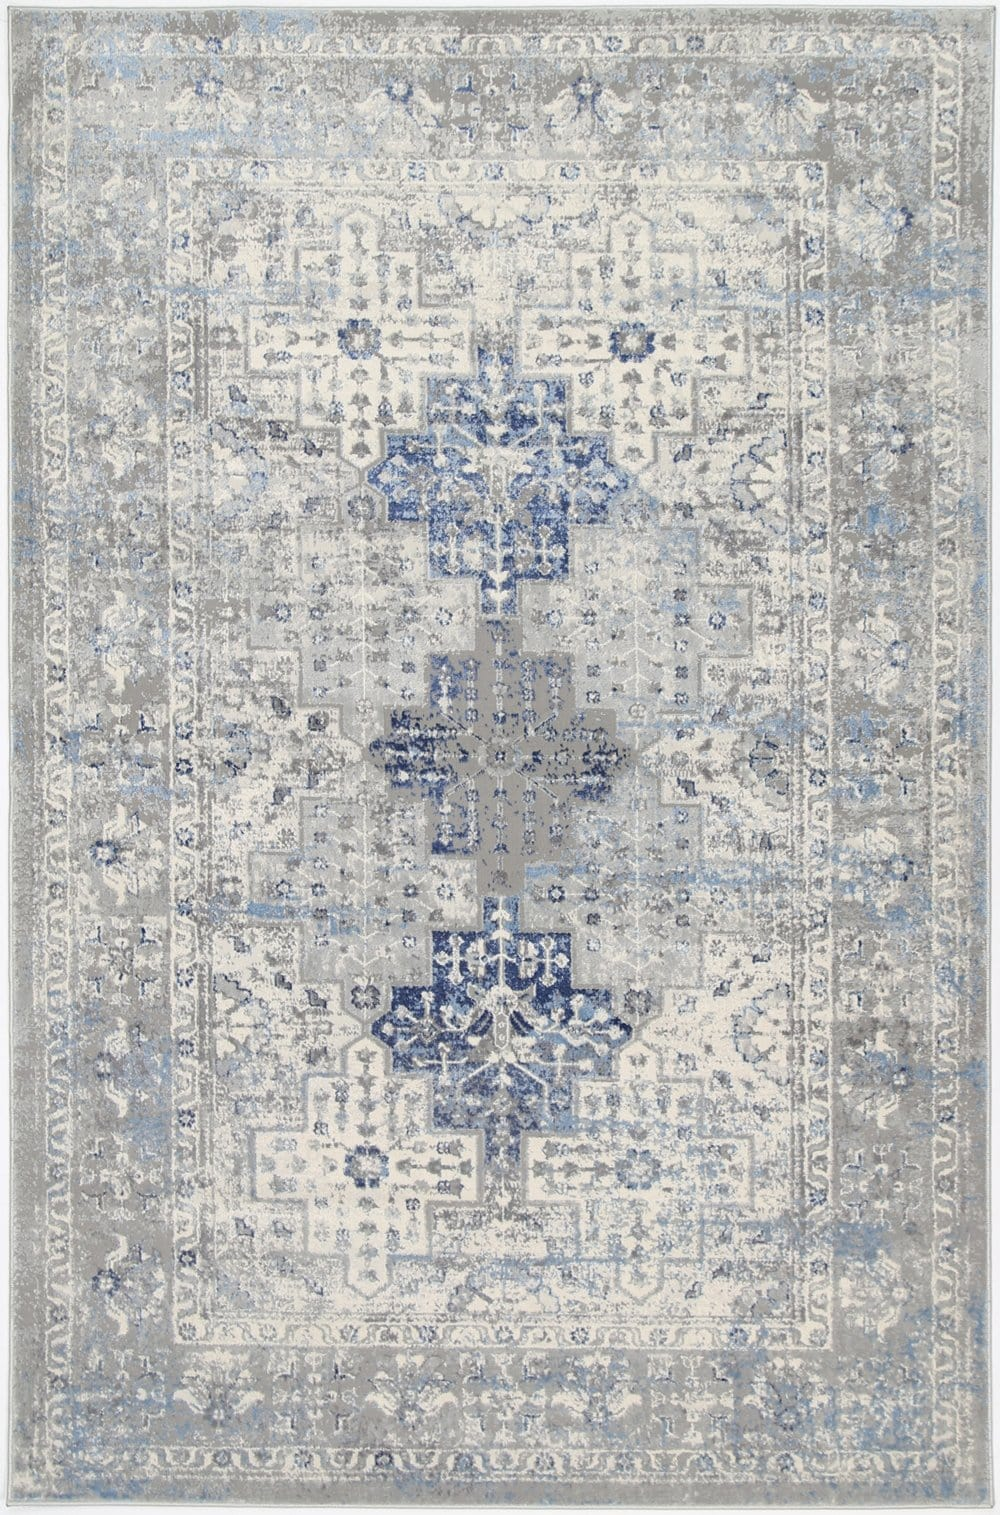 Utica Blue and Grey Distressed Medallion Rug